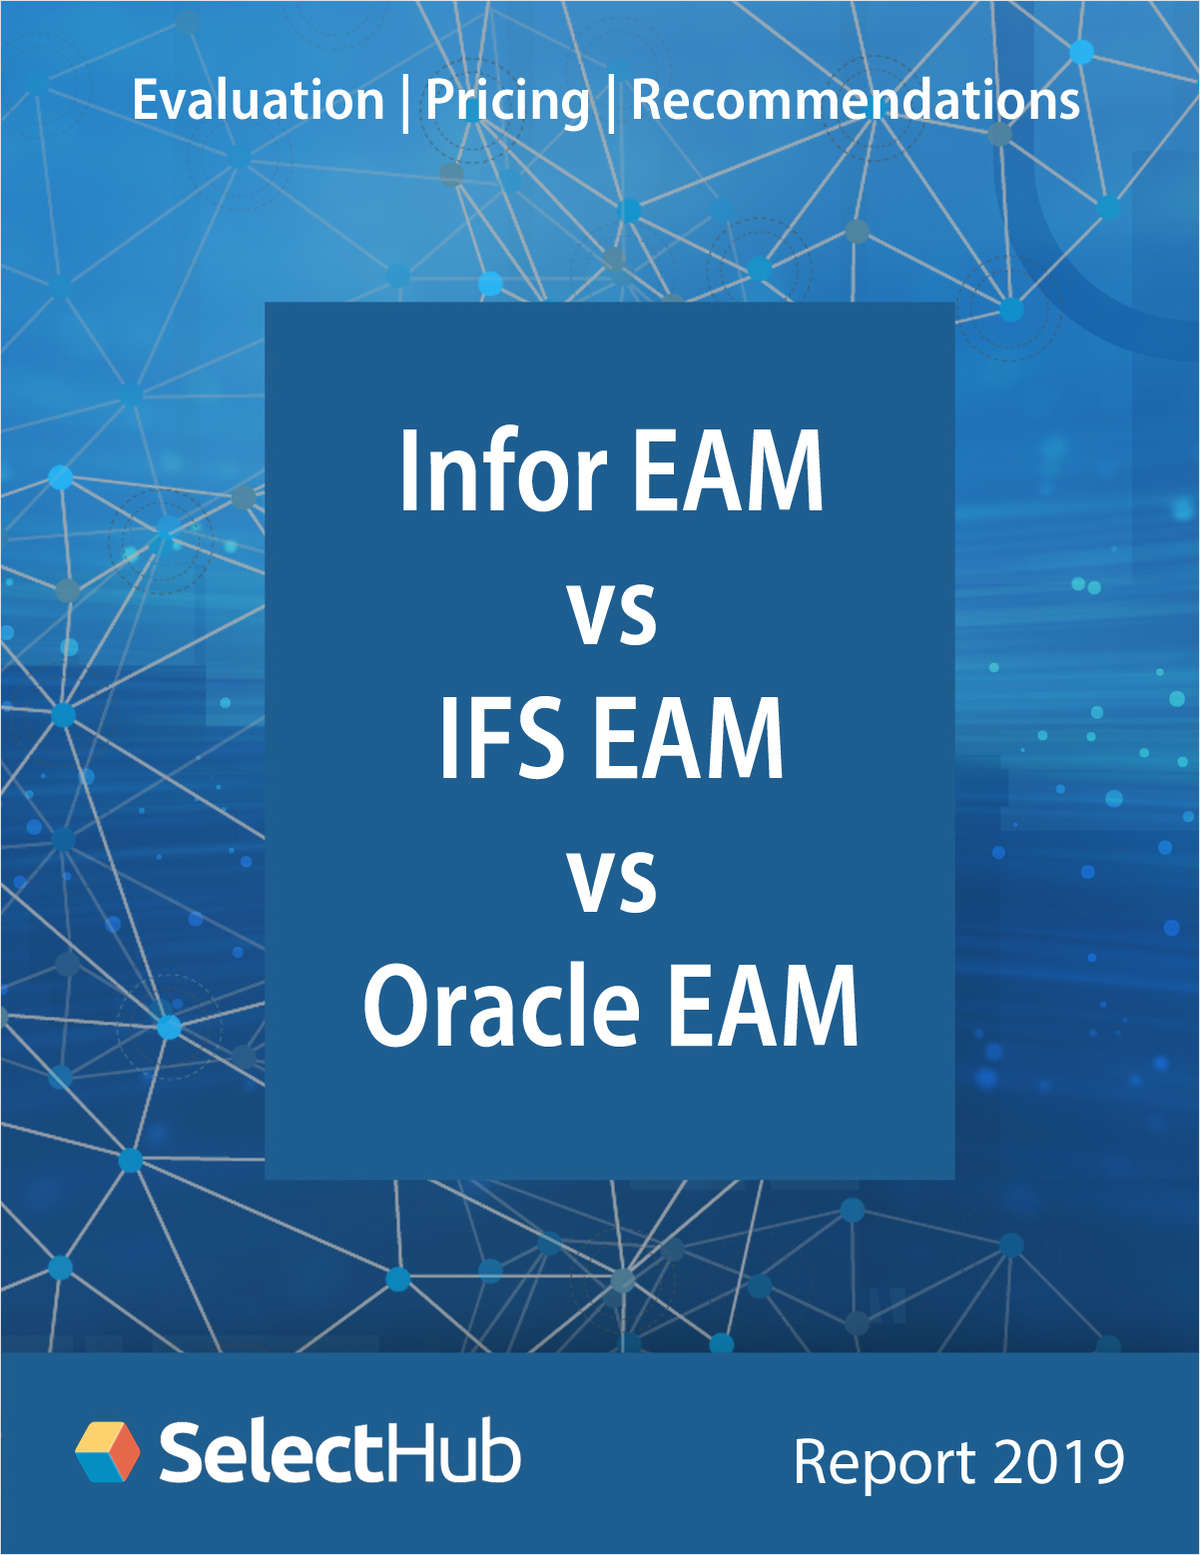 Infor EAM vs. IFS EAM vs. Oracle EAM―Expert Evaluations, Pricing & Recommendations